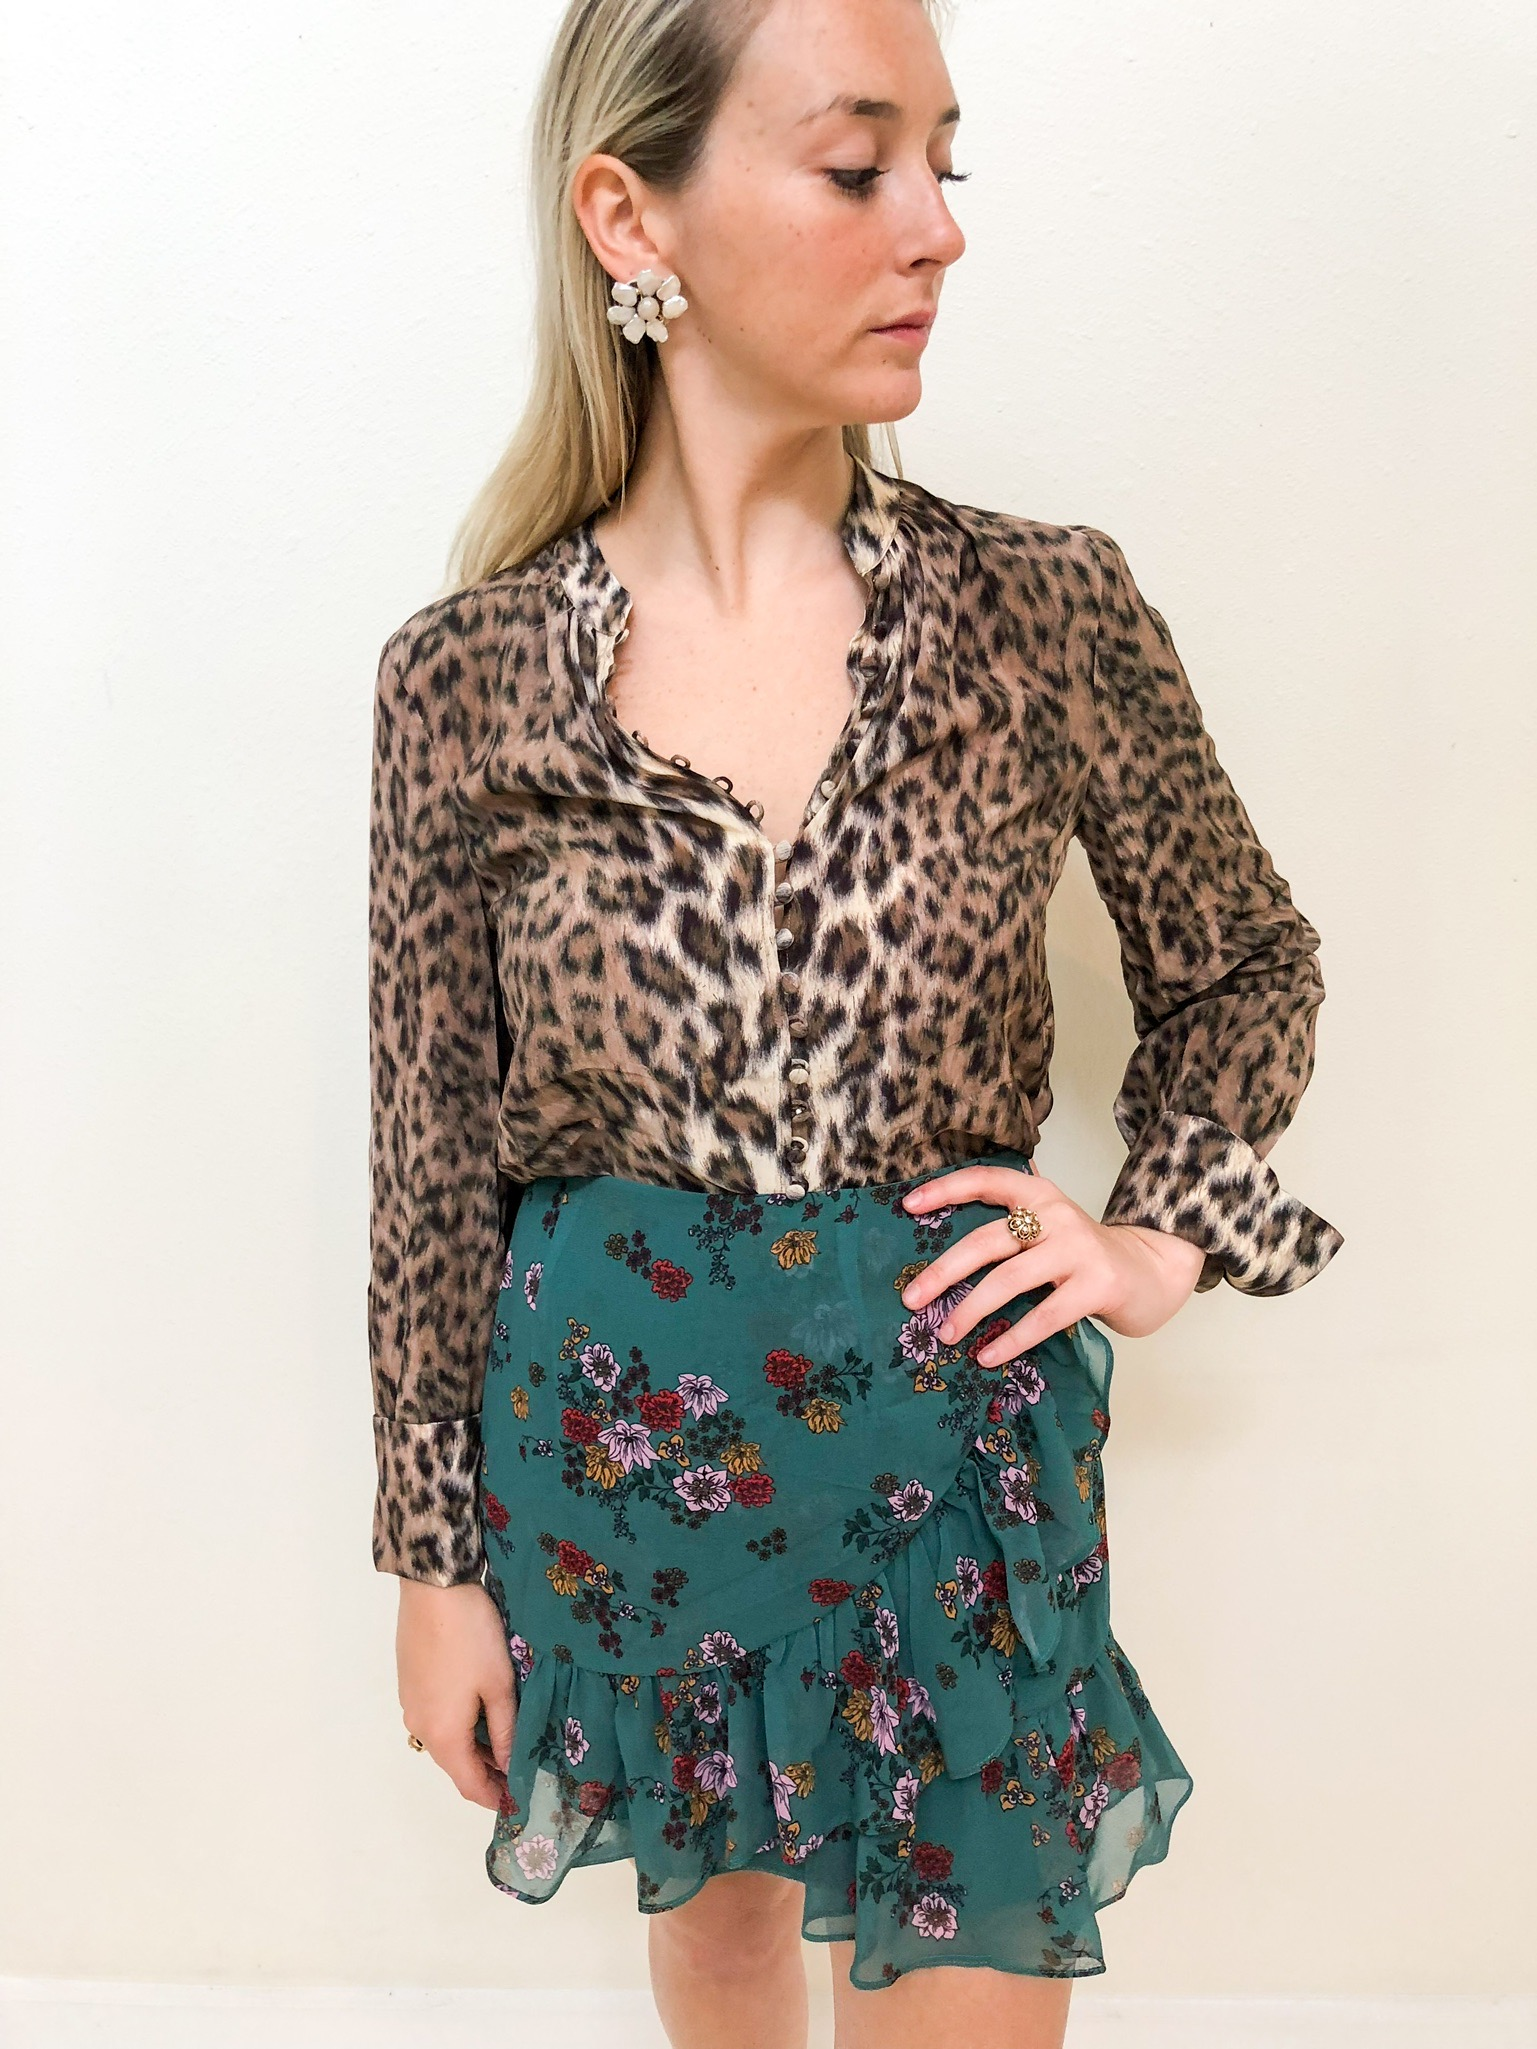 Fourth Look: - Fourth Look:Animal print is a classic fall staple. Mix to perfection with this floral ruffle mini for a match made in heaven.